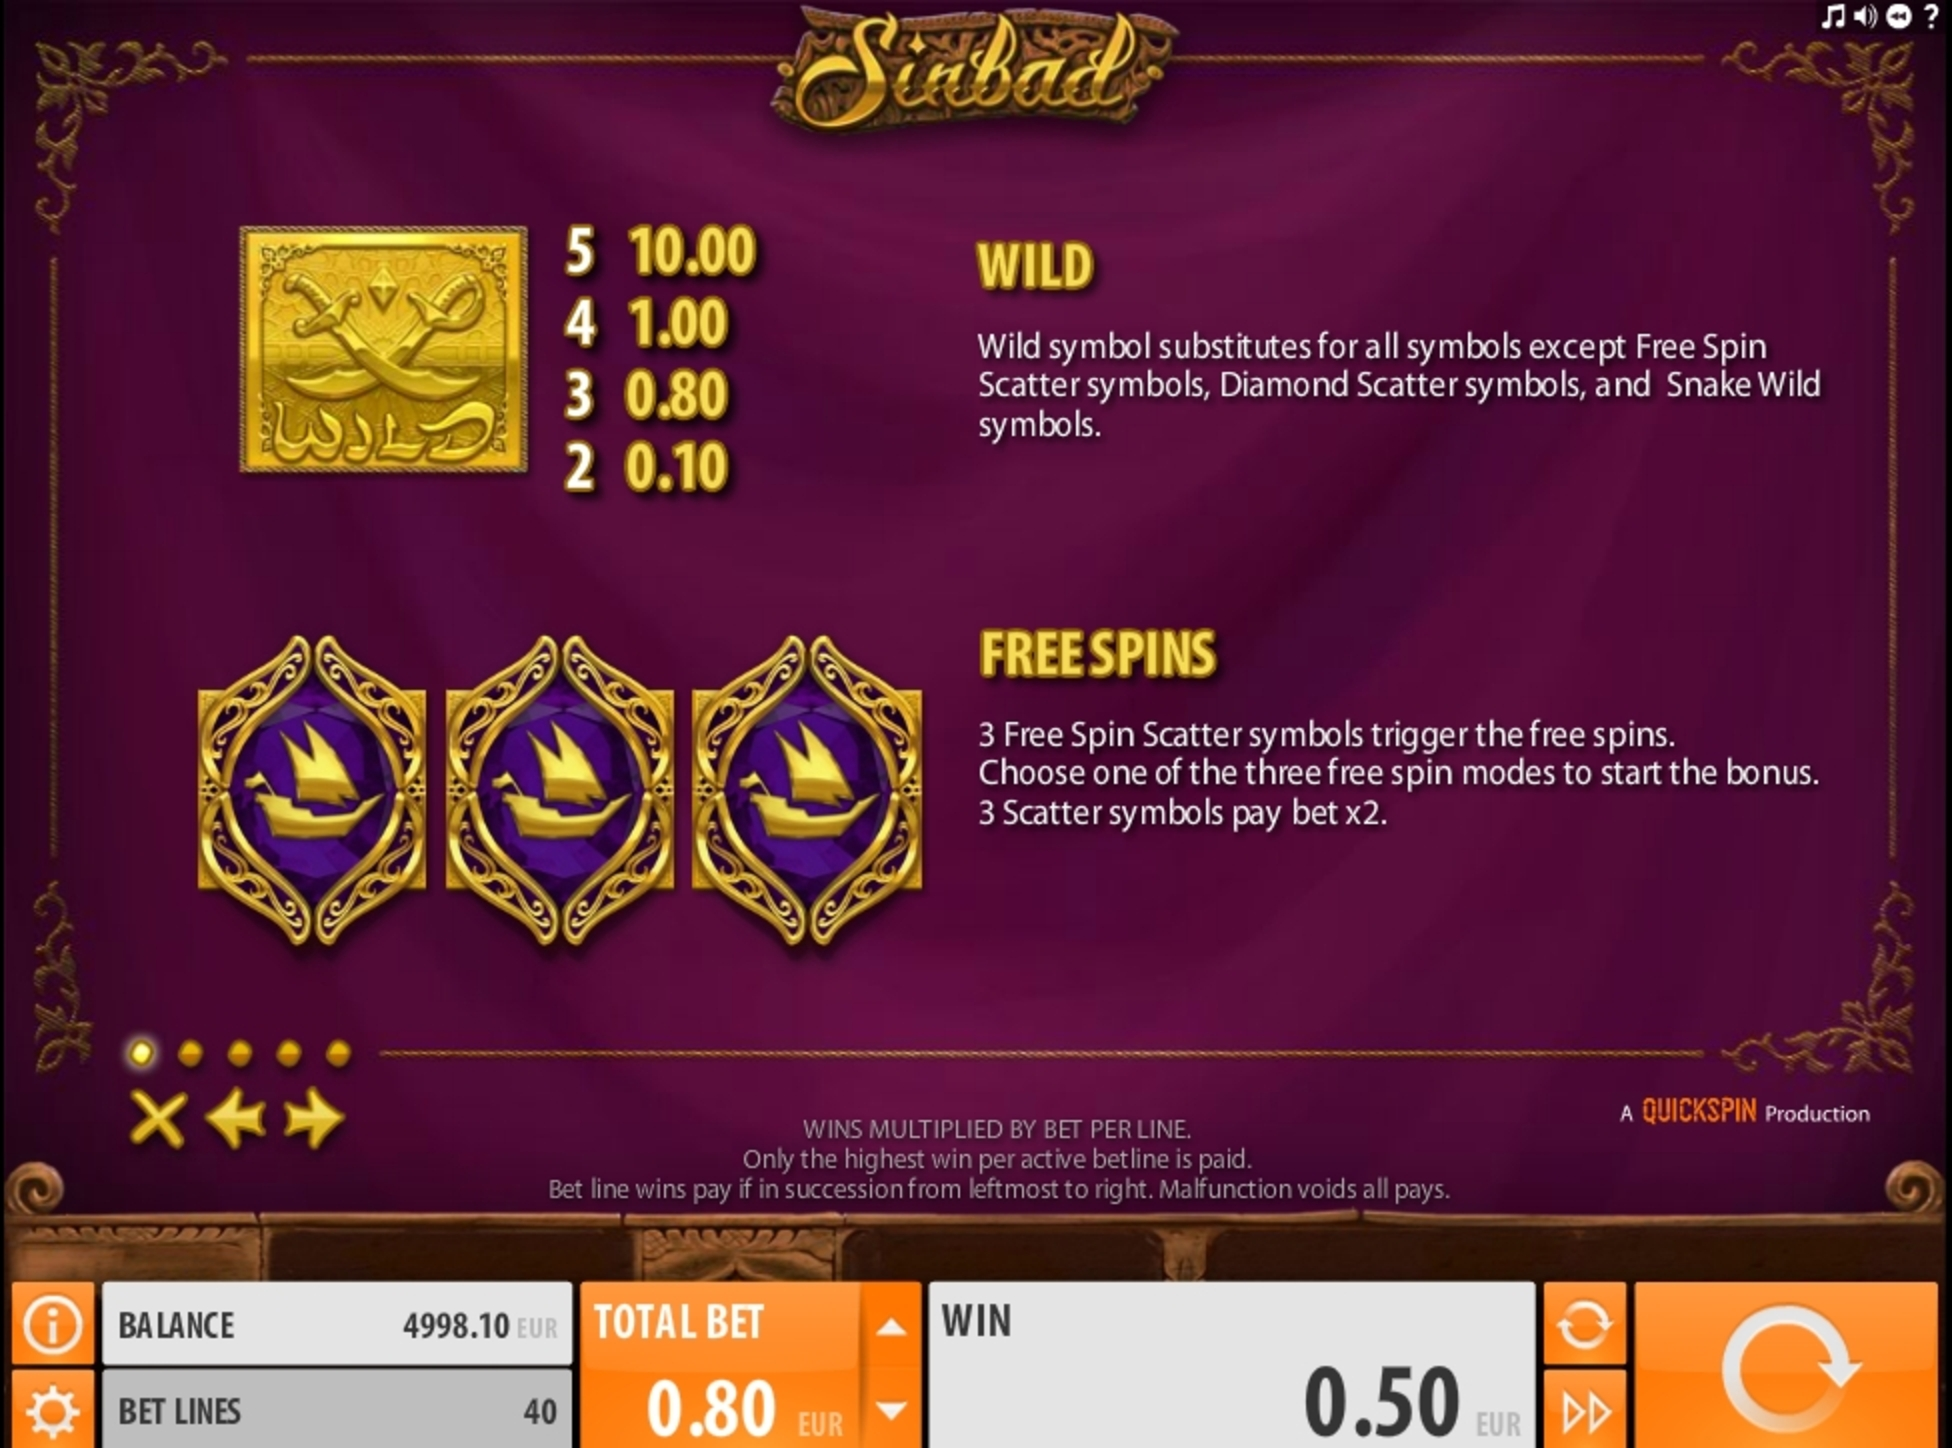 Info of Sinbad (Quickspin) Slot Game by Quickspin